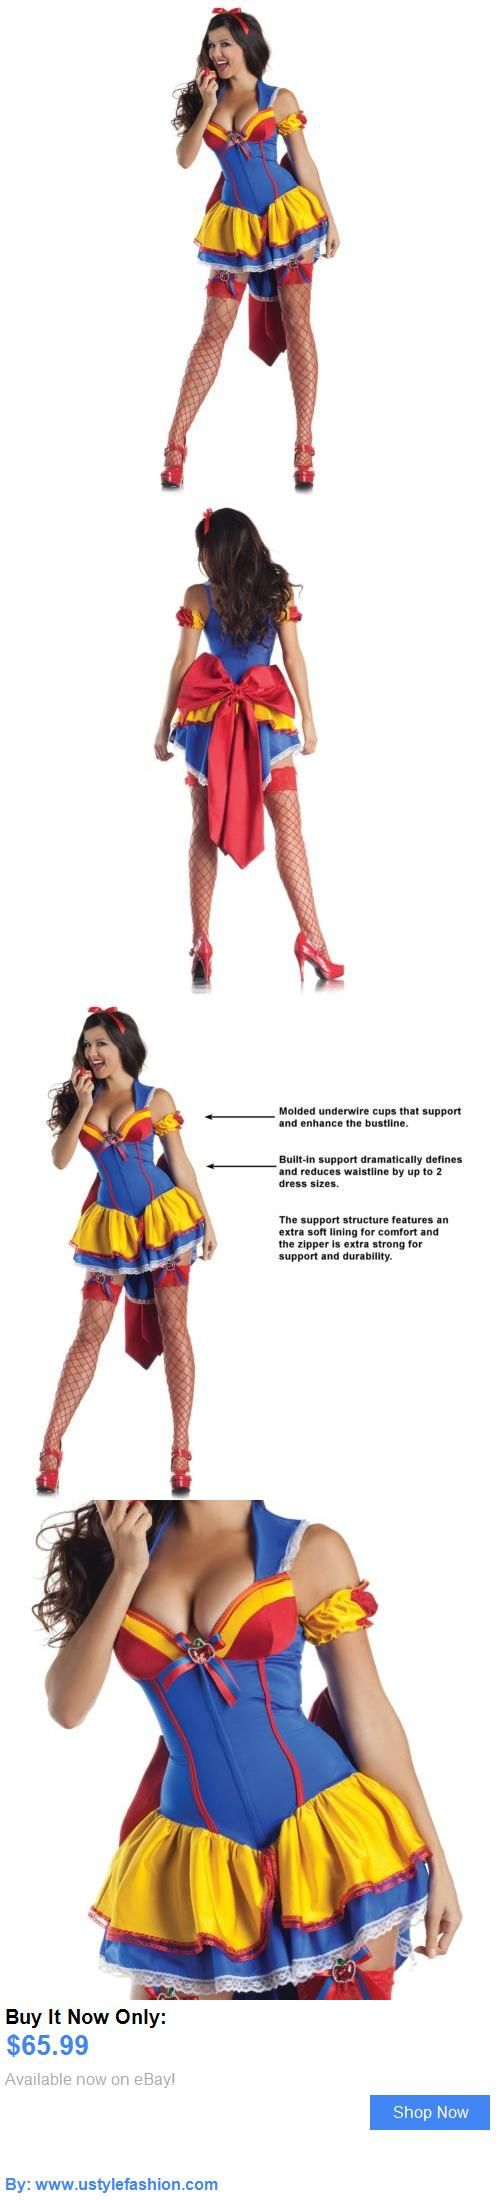 Costumes and reenactment attire: Snow White Costume Adult Sexy Halloween Fancy Dress BUY IT NOW ONLY: $65.99 #ustylefashionCostumesandreenactmentattire OR #ustylefashion